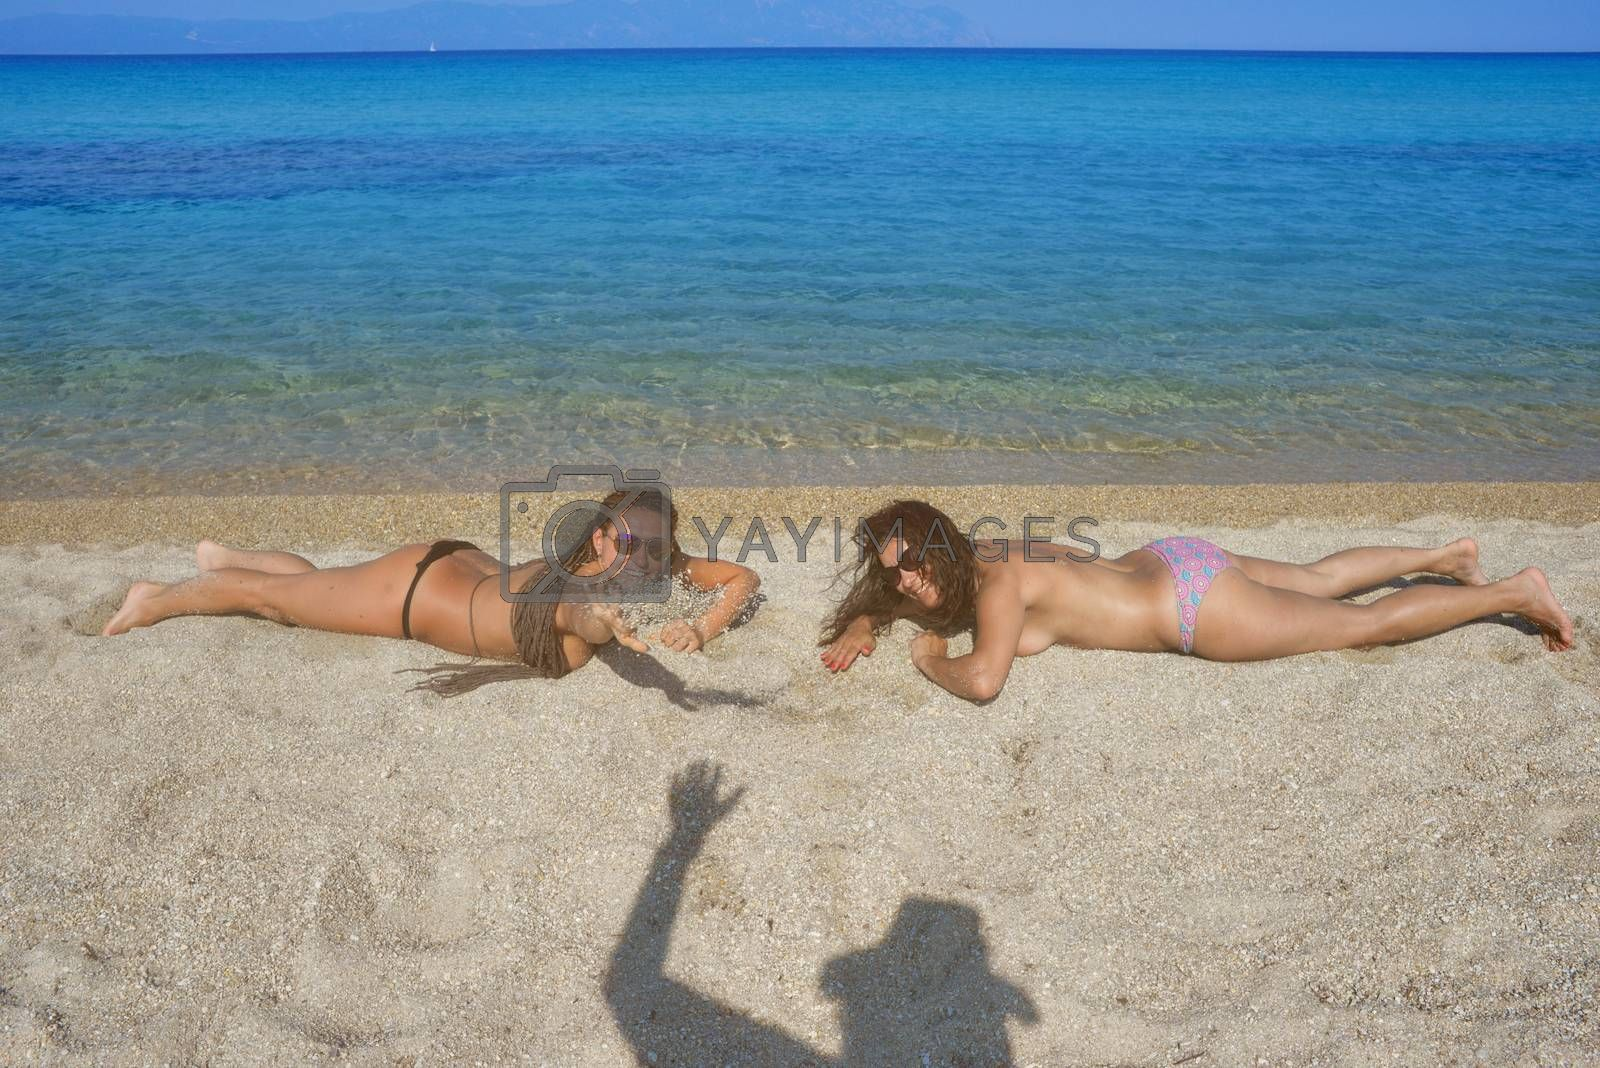 Two beautiful women on the beach are smiling to a person, shown with his waving shadow on the sand.